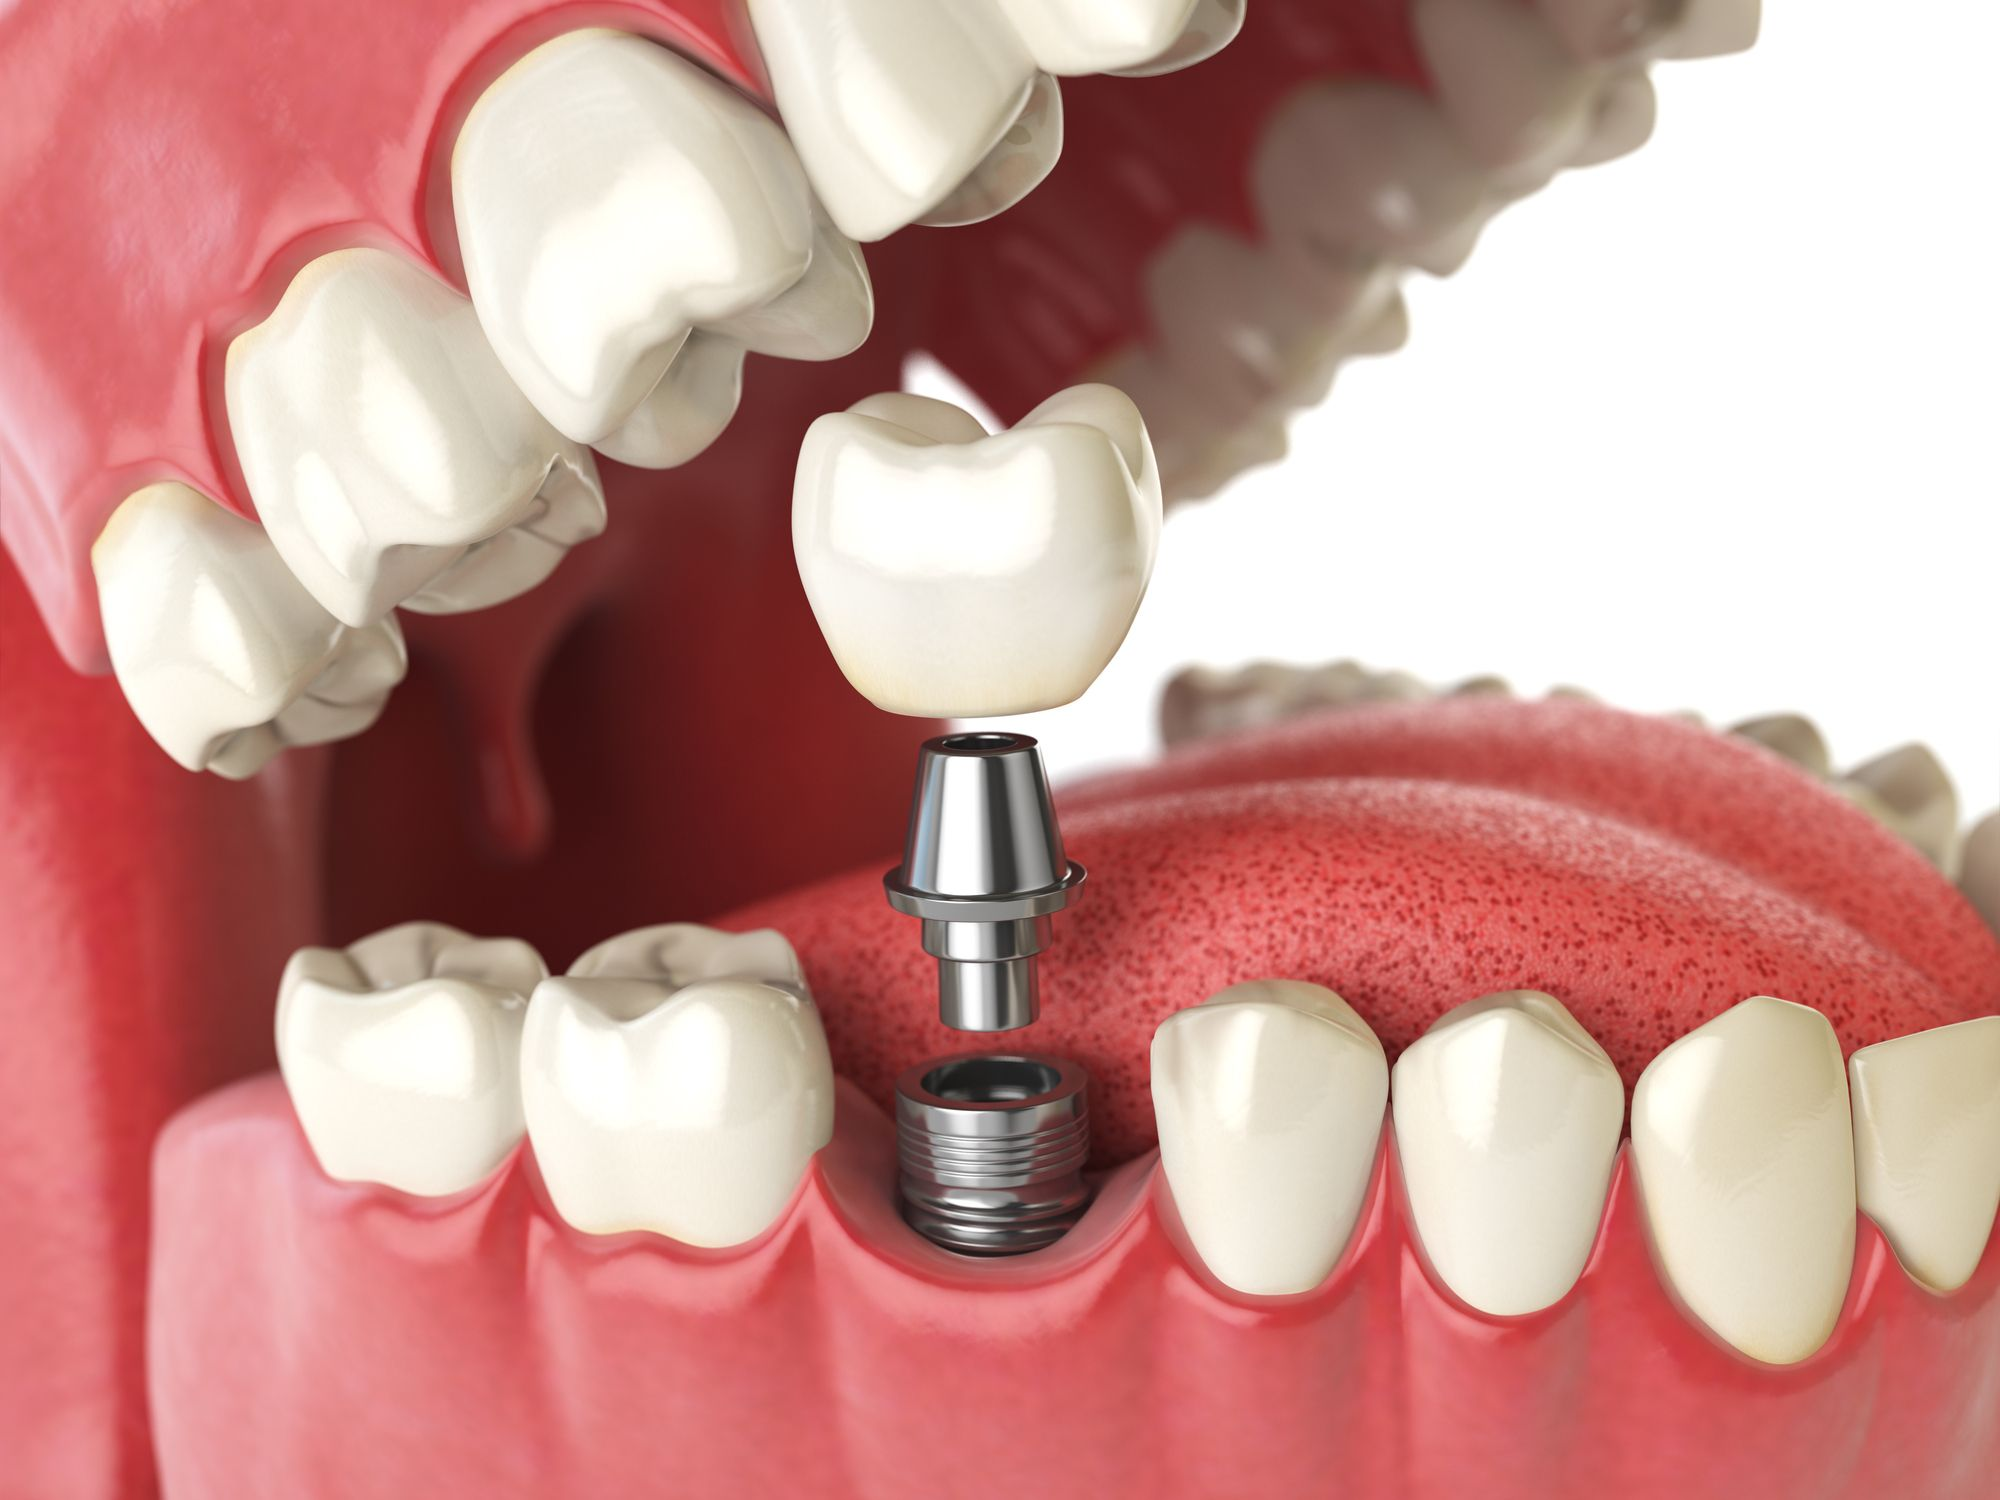 Implants - Best Questions To Ask When Comparing Cosmetic Dentistry Costs In Colombia